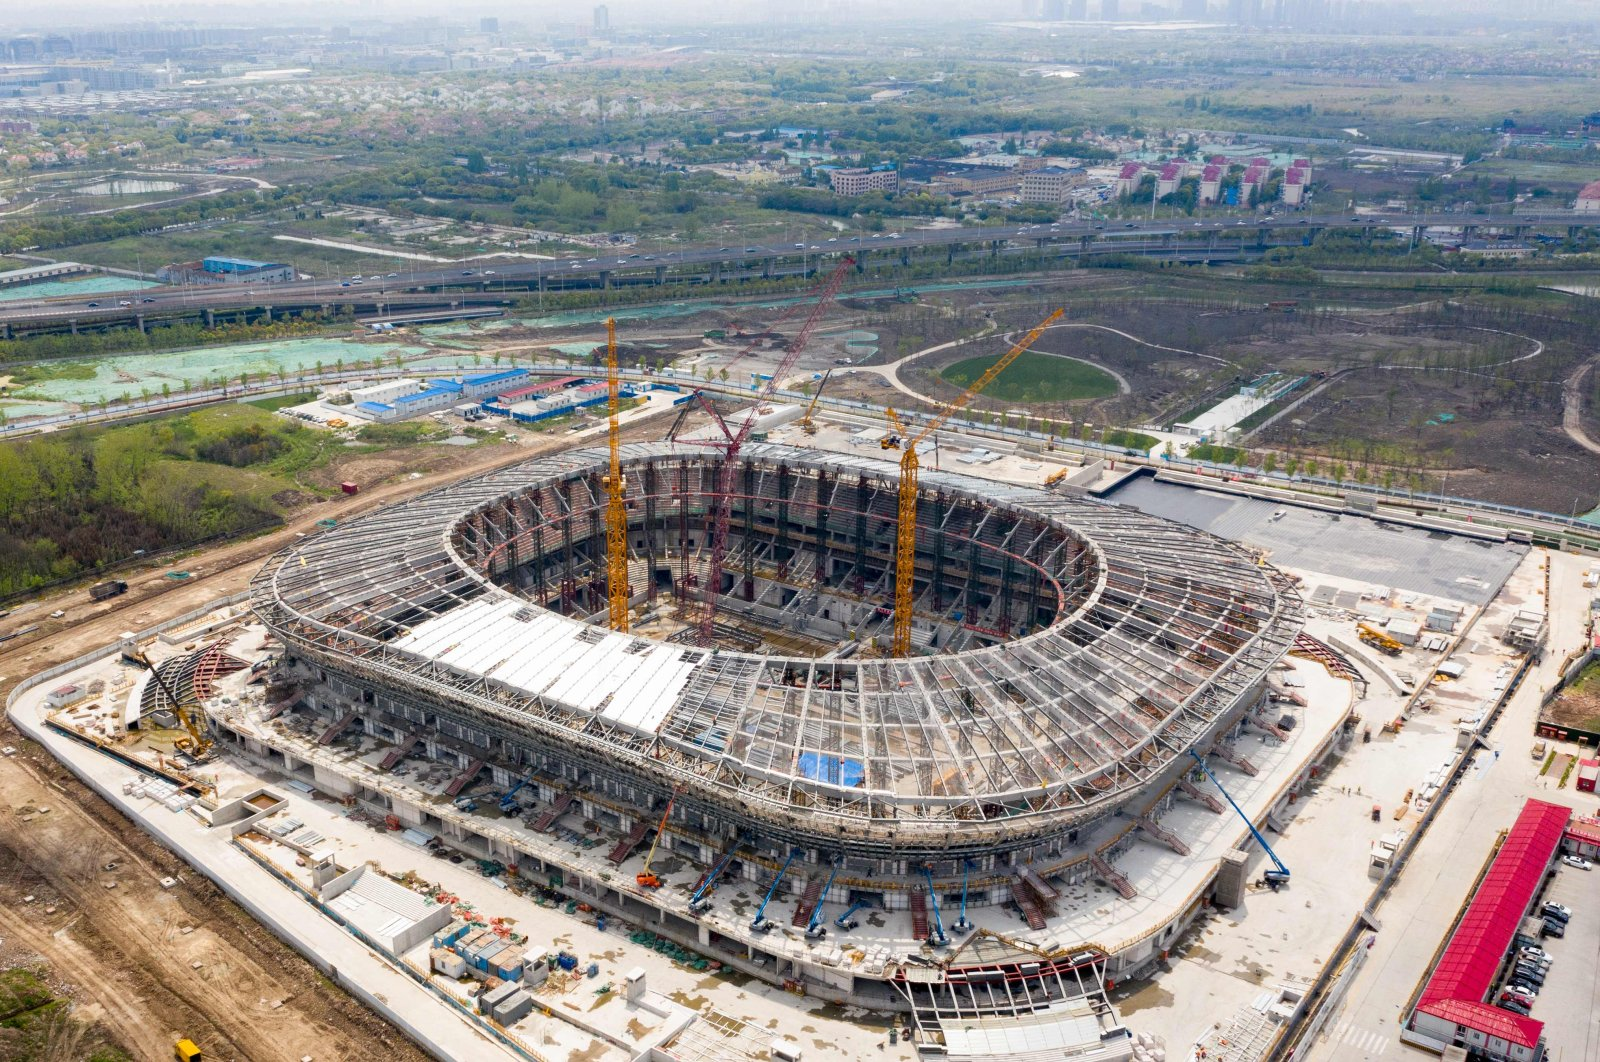 The construction site of Chinese Super League (CSL) side Shanghai SIPG's new stadium in Shanghai, China, April 22, 2020. (AFP Photo)